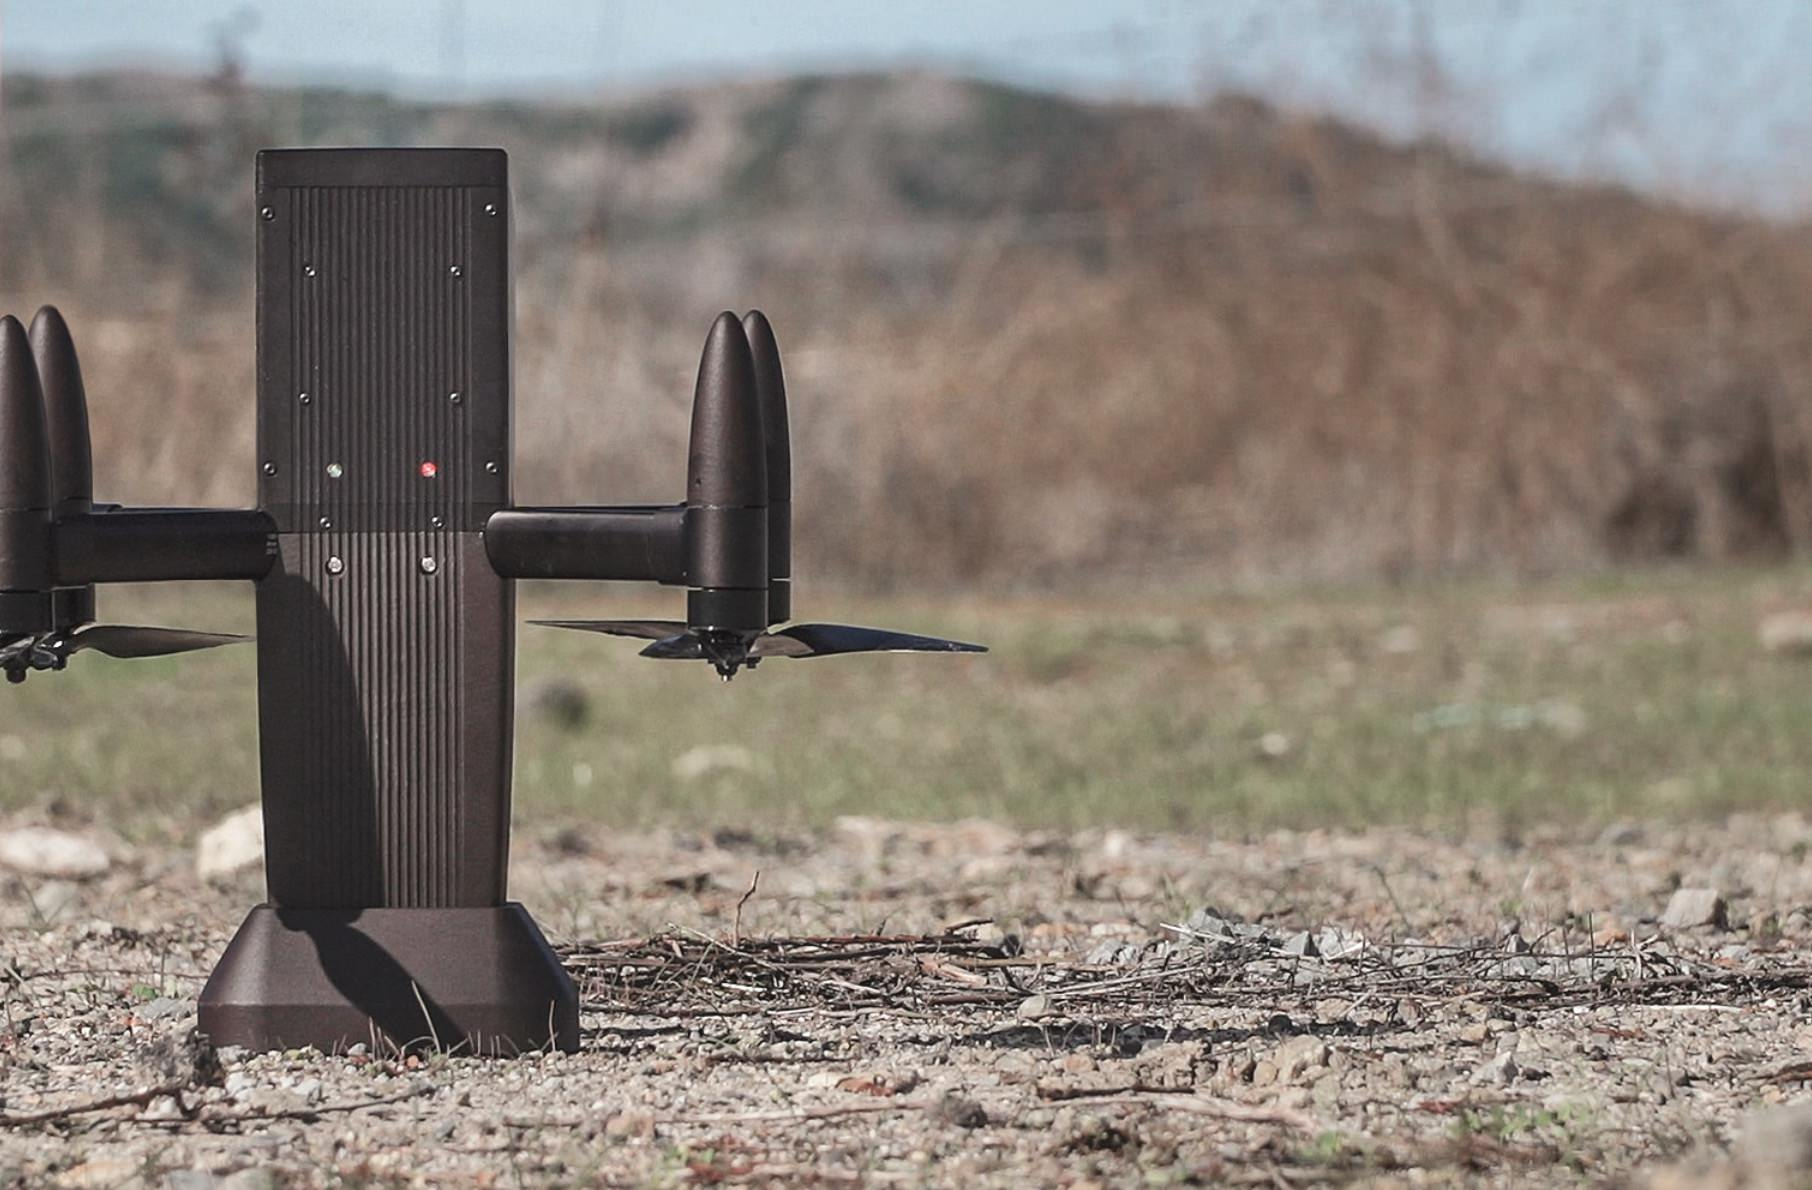 Counter-drone startup Anduril raises $200 million